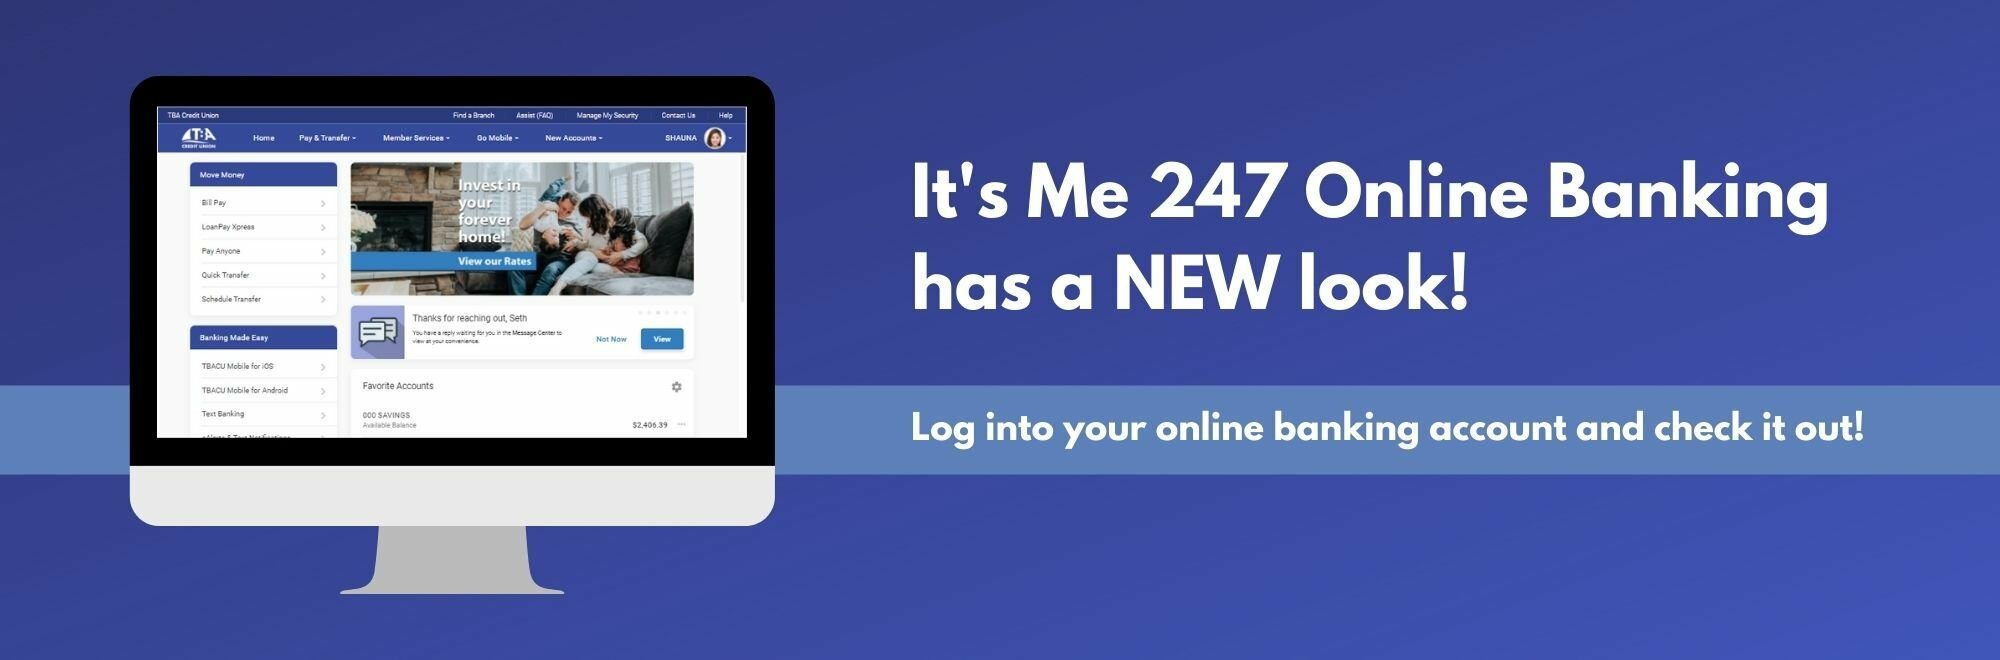 It's Me 247 Online Banking has a new look! Log into your online banking account and check it out!